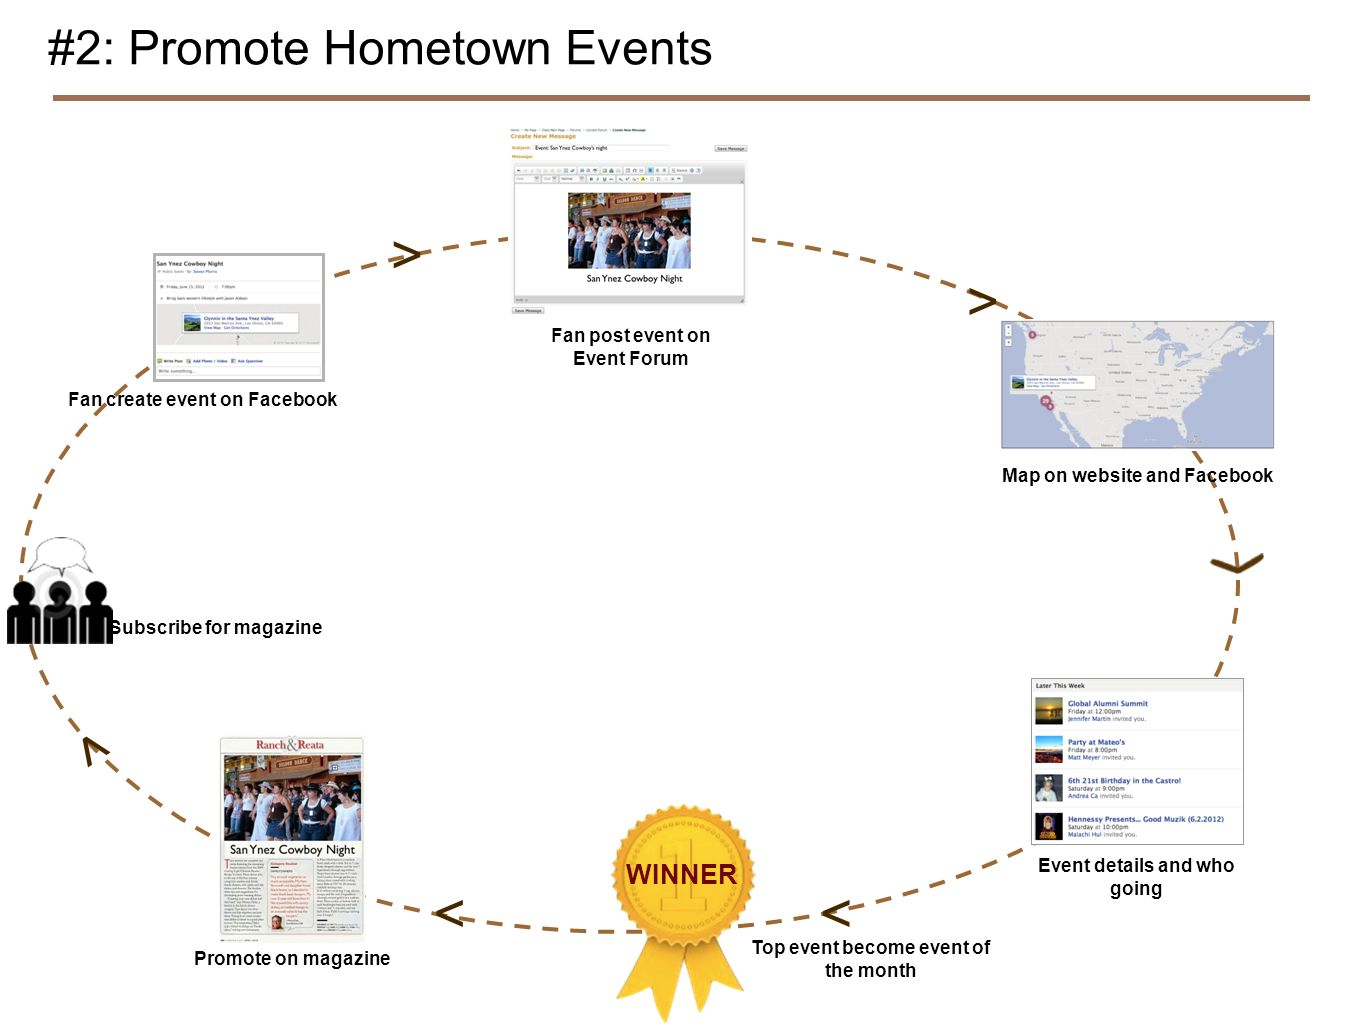 #2: Promote Hometown Events Fan create event on Facebook Fan post event on Event Forum Map on website and Facebook Event details and who going WINNER Top event become event of the month Promote on magazine Subscribe for magazine > > << <